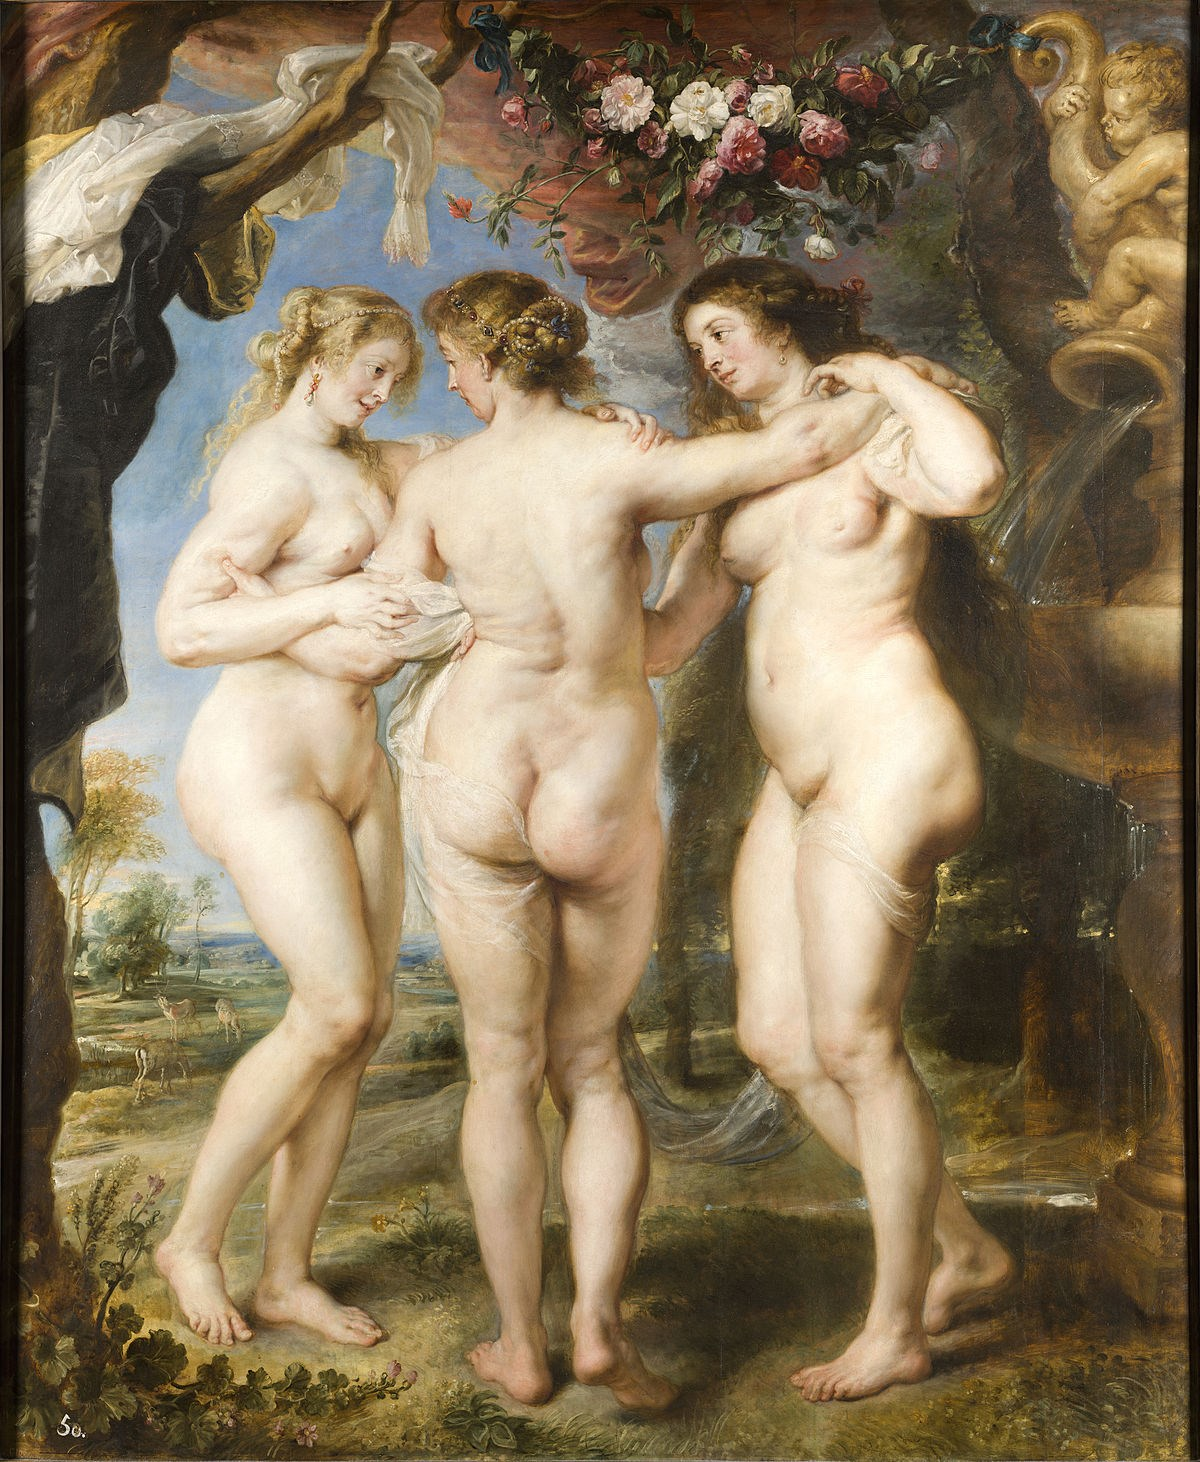 Open Letter from Visit Flanders to Mark Zuckerberg about Rubens' Breasts